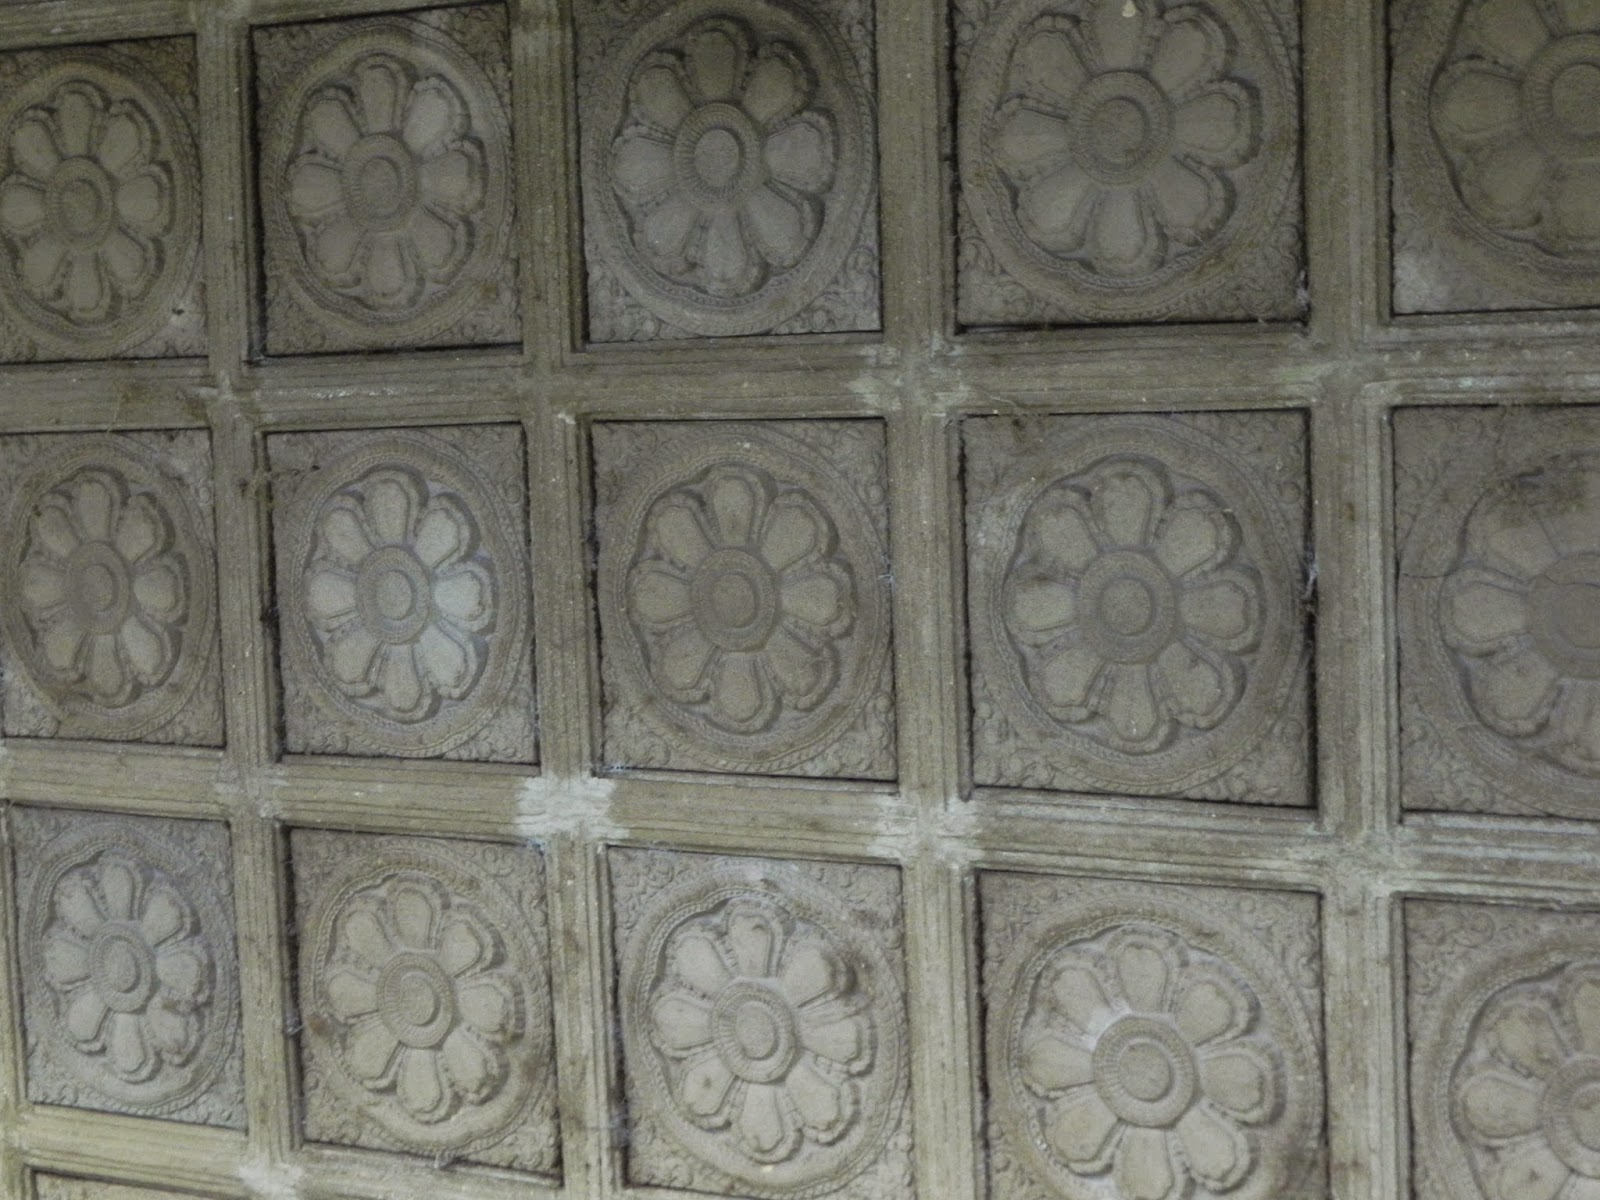 Carved lotus on the ceilings of the Angkor Wat Temple